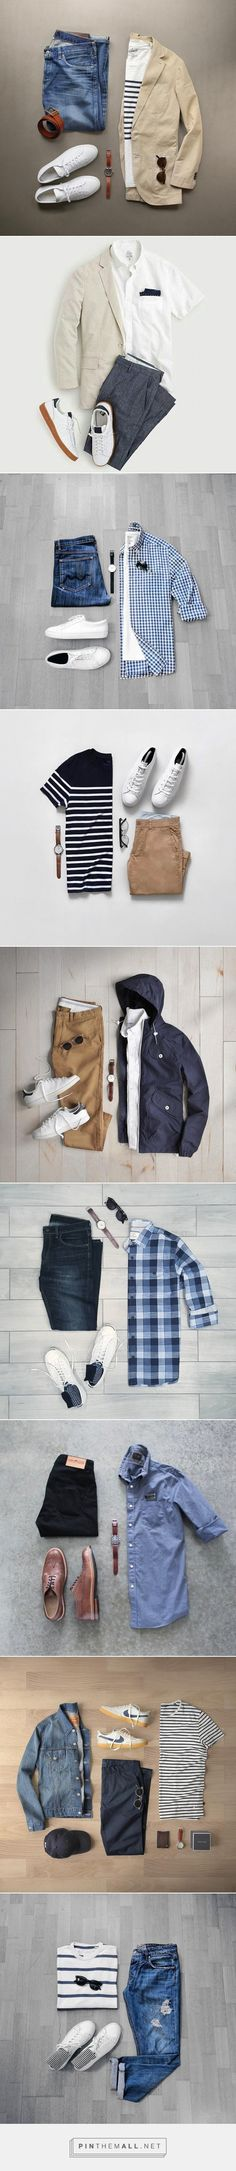 Cool Outfit Grids.